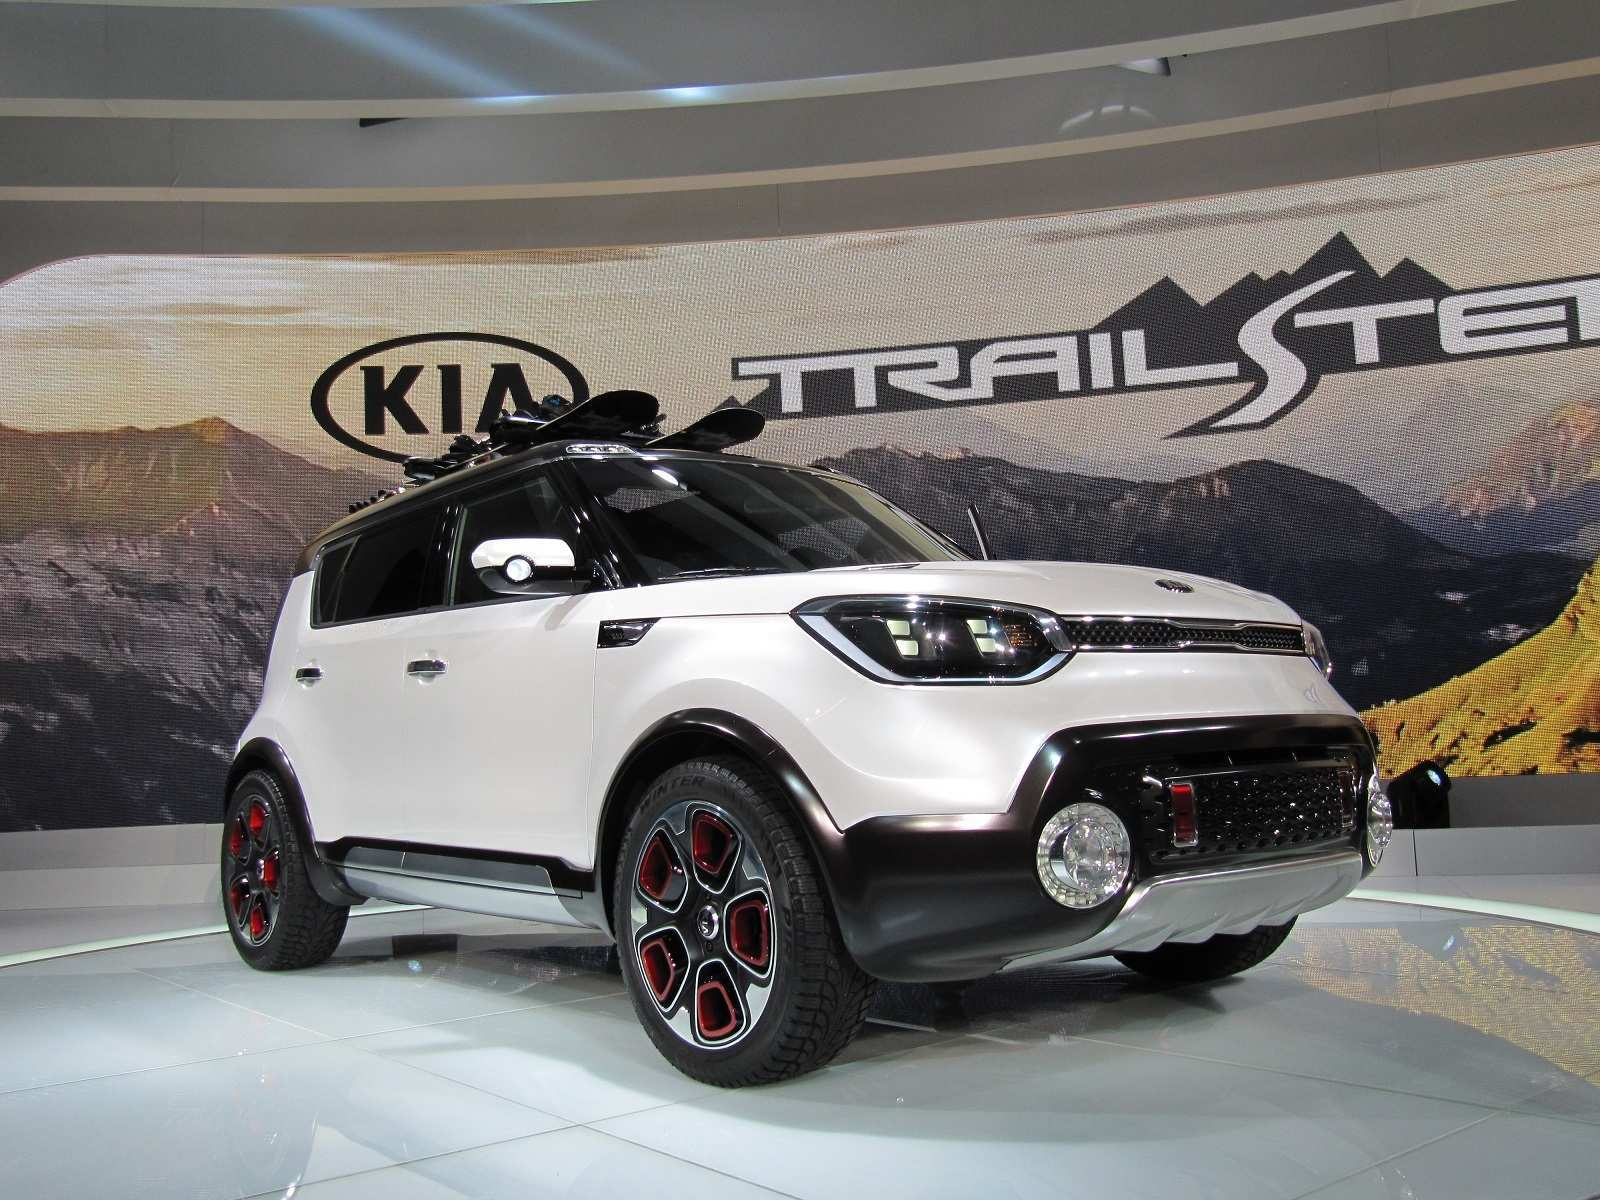 21 Great Kia Trailster 2020 Price with Kia Trailster 2020